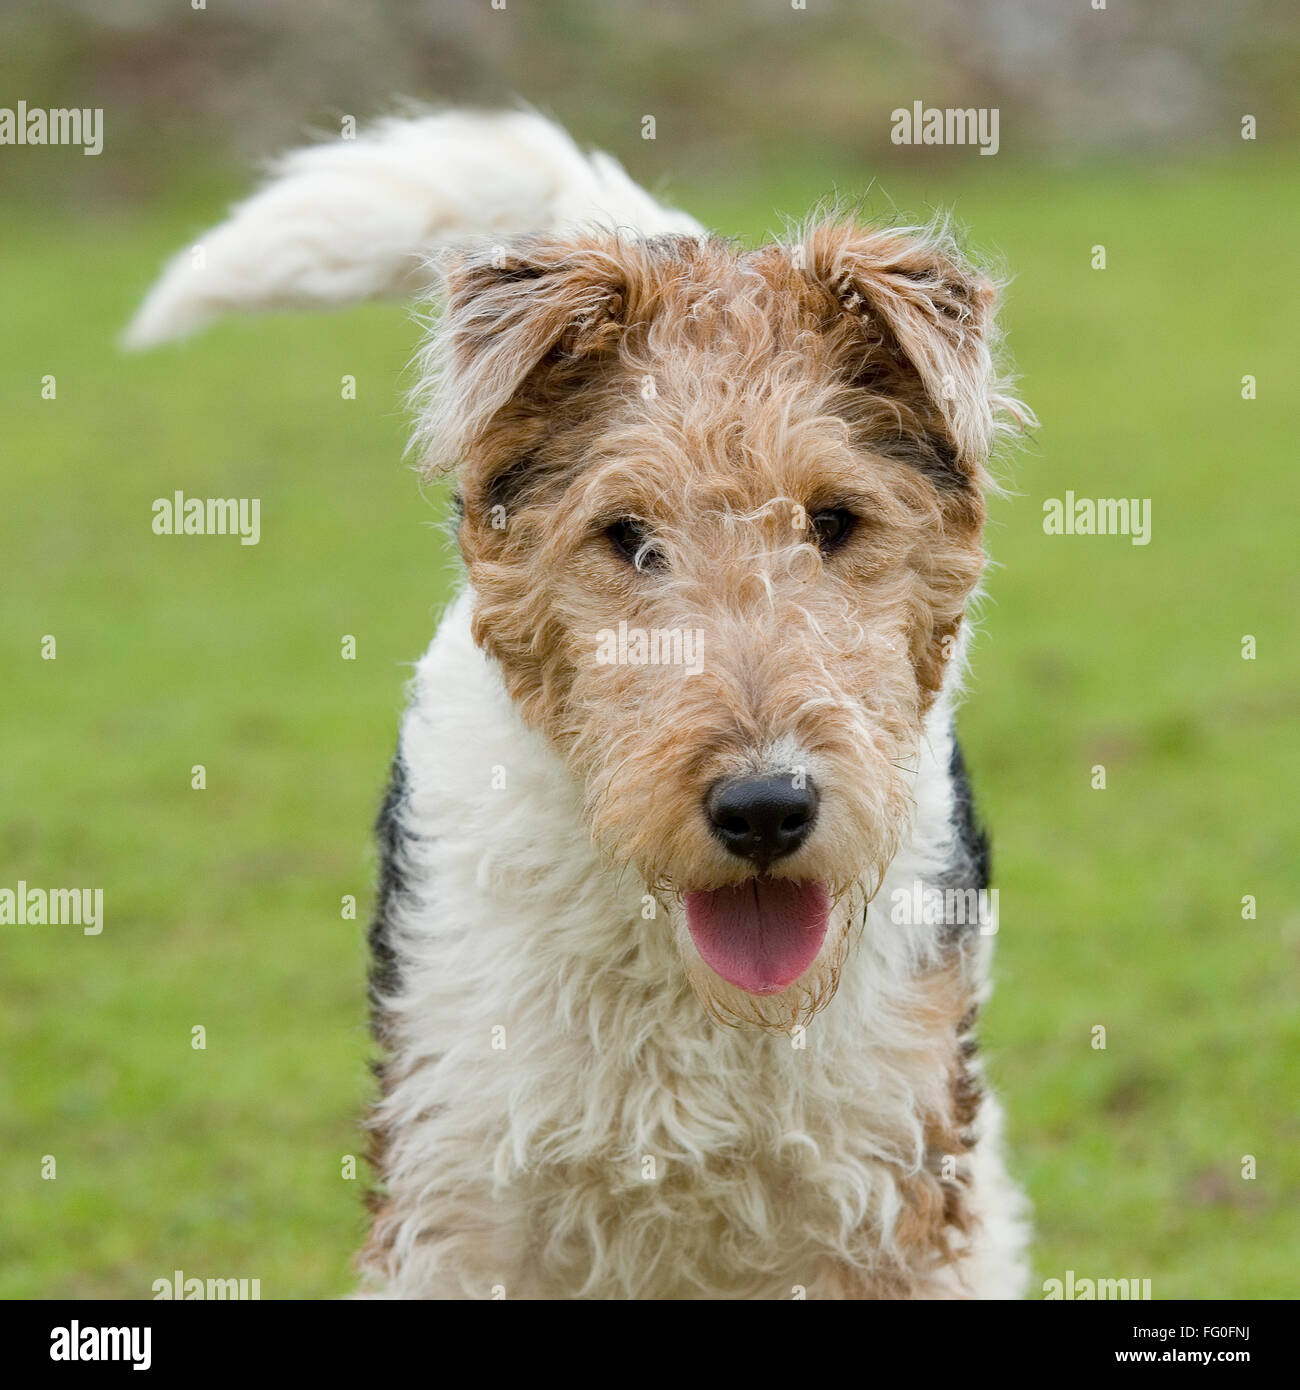 Haired Fox Terrier Wirehaired Wire Center 6inrfelectricalwiringcoaxialcableconnectormmcxmalerightangle Pedigree Stock Photos Rh Alamy Com Cairn Airedale